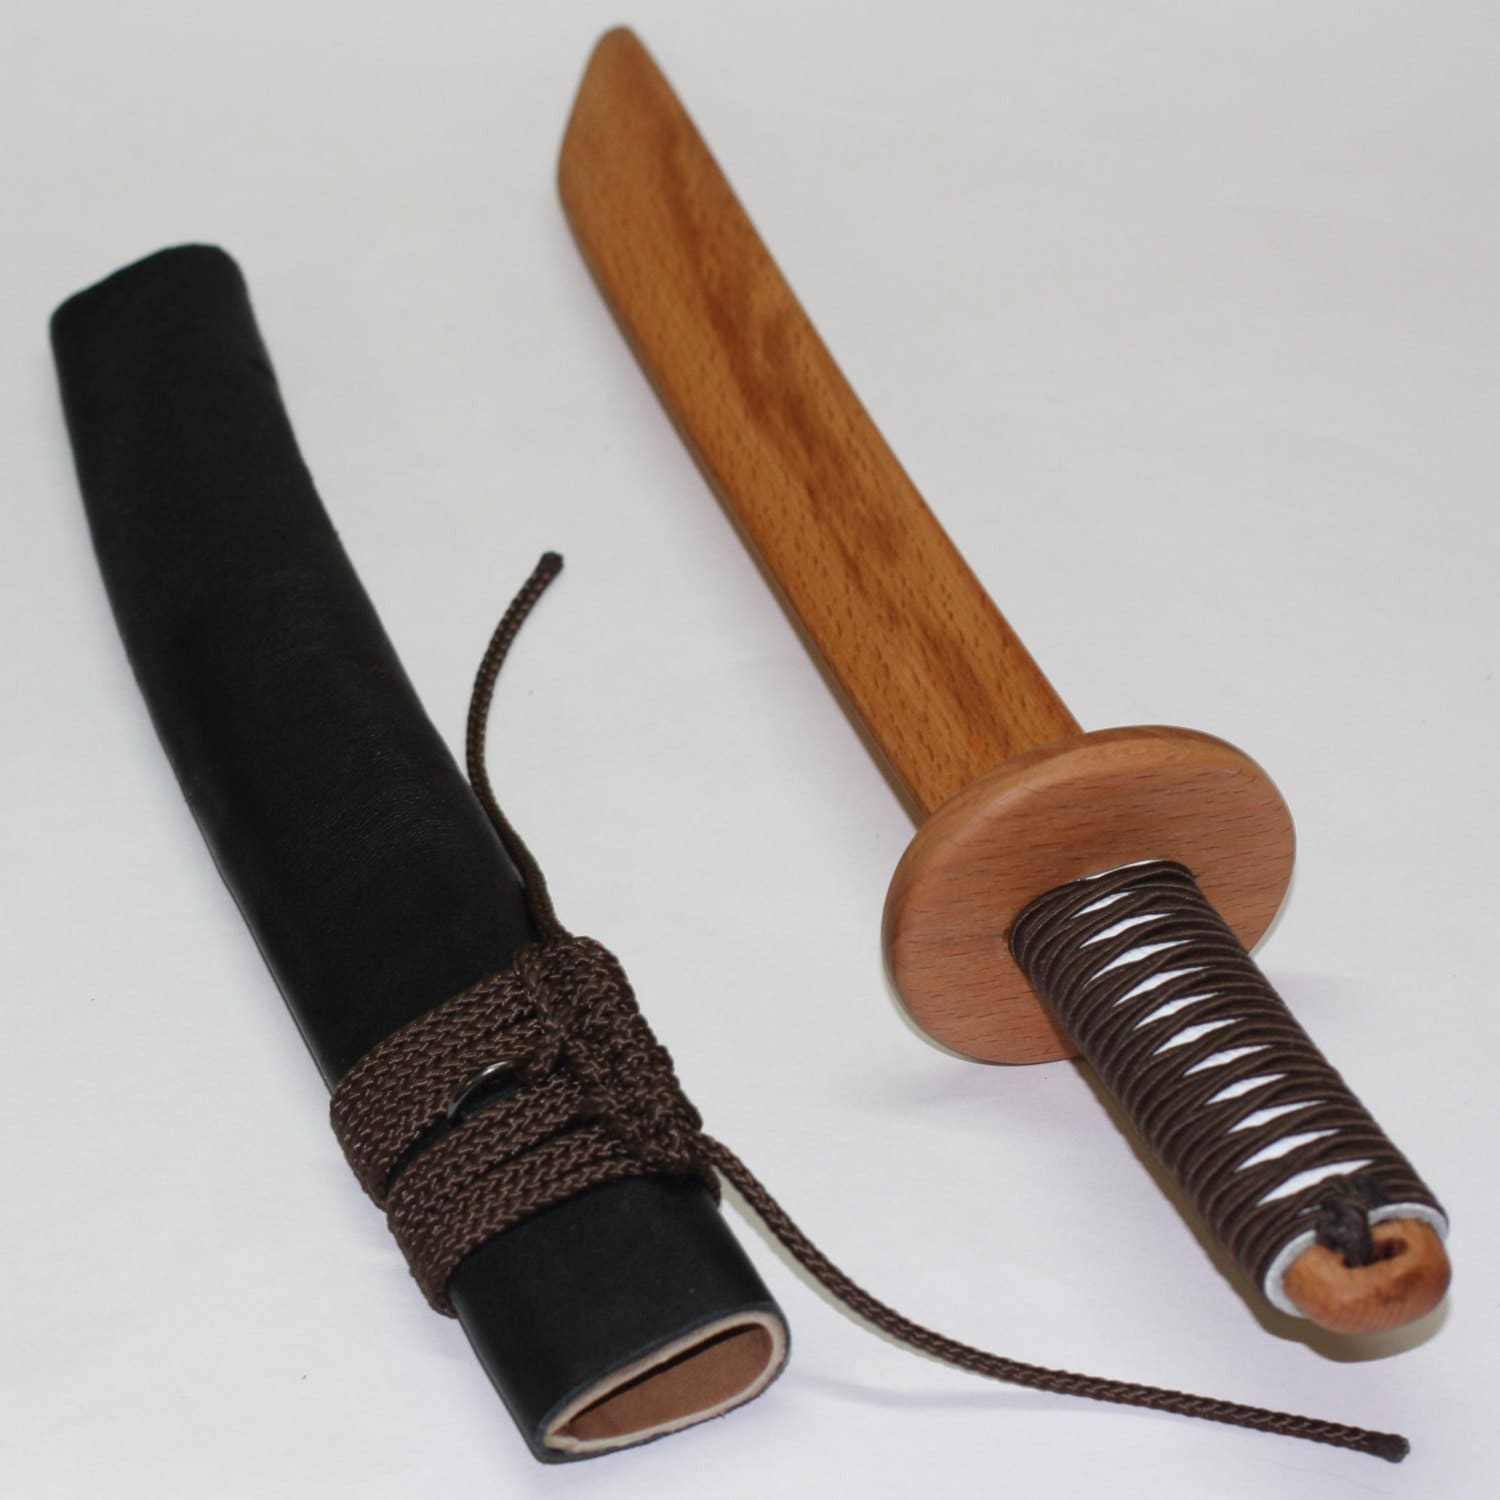 Toys For Knives : Toy wooden knife tanto with leather sheath